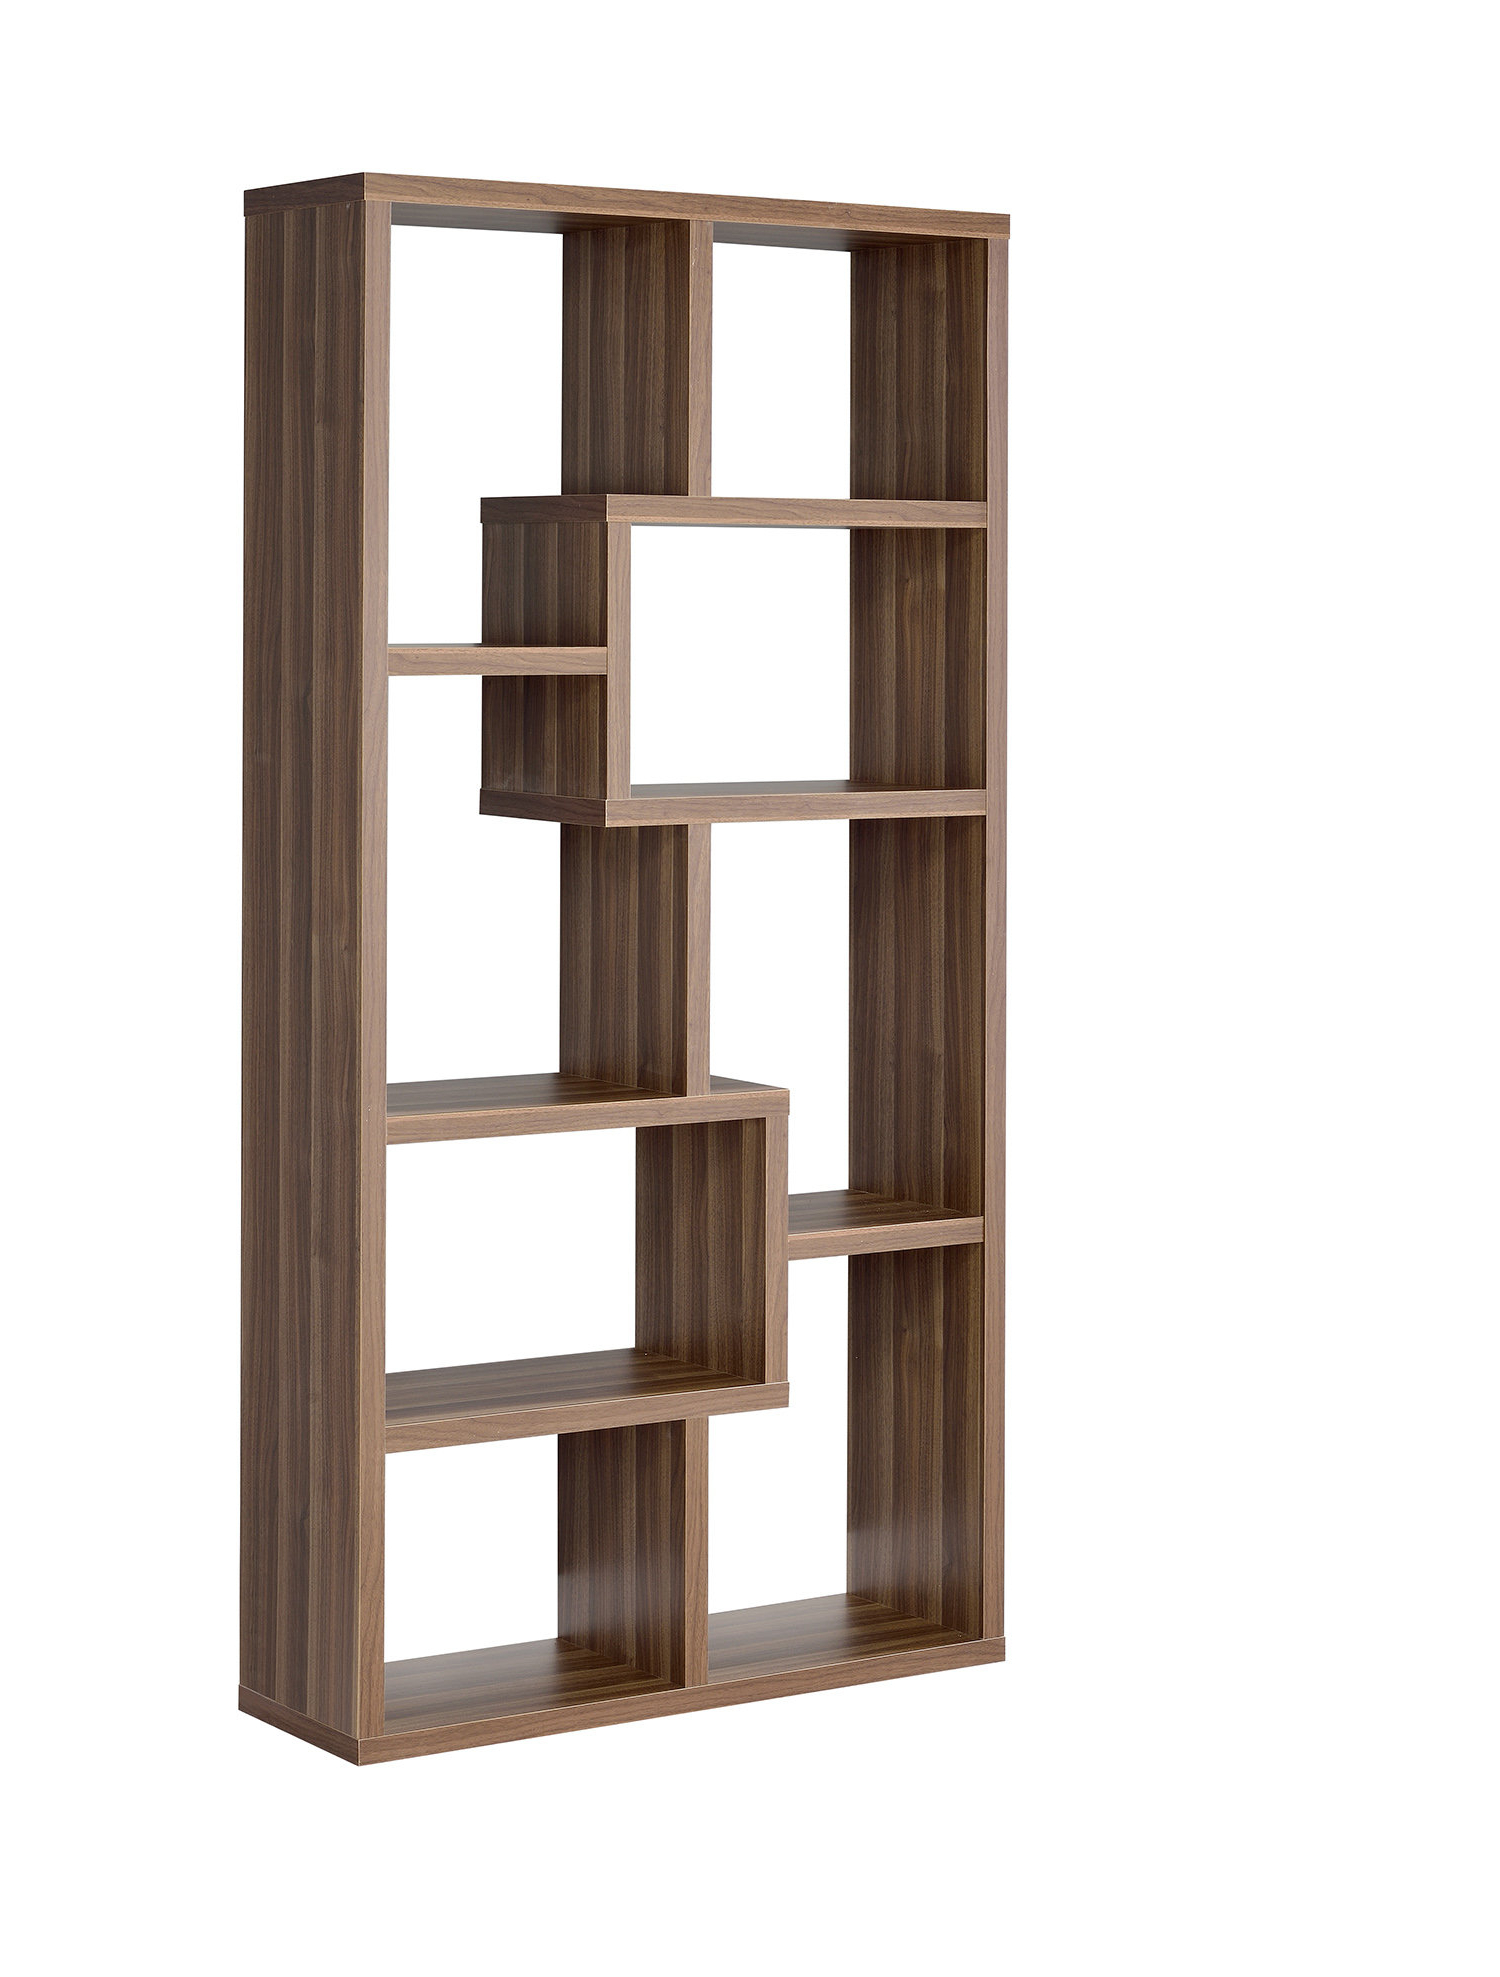 Recent Flavius Geometric Bookcase For Skaggs Geometric Bookcases (View 10 of 20)